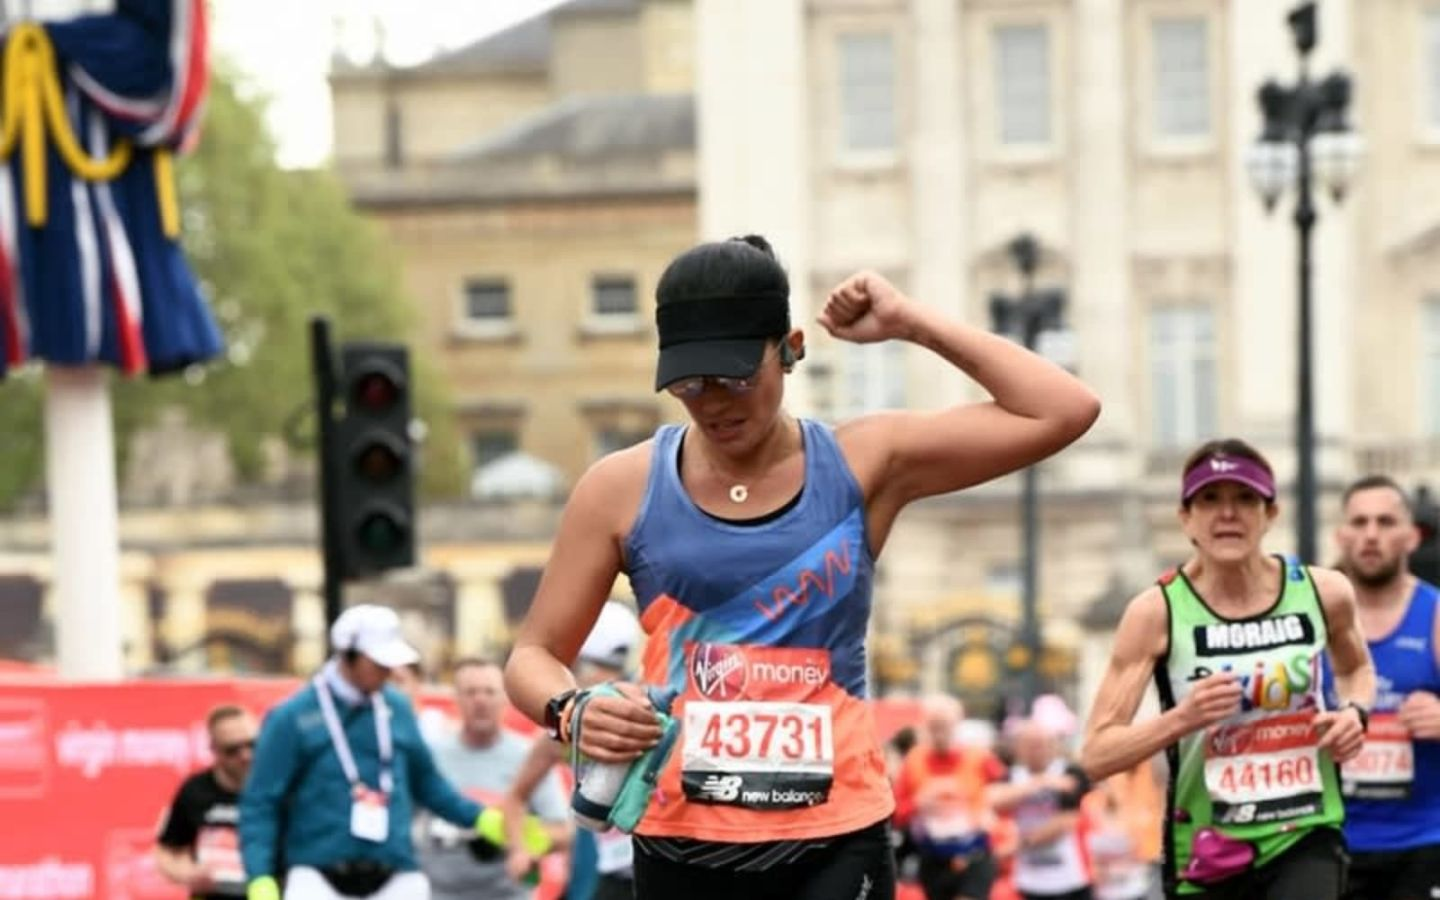 Runner, Lisa Kurdziel wearing black baseball cap raising fist in the air with runners behind her